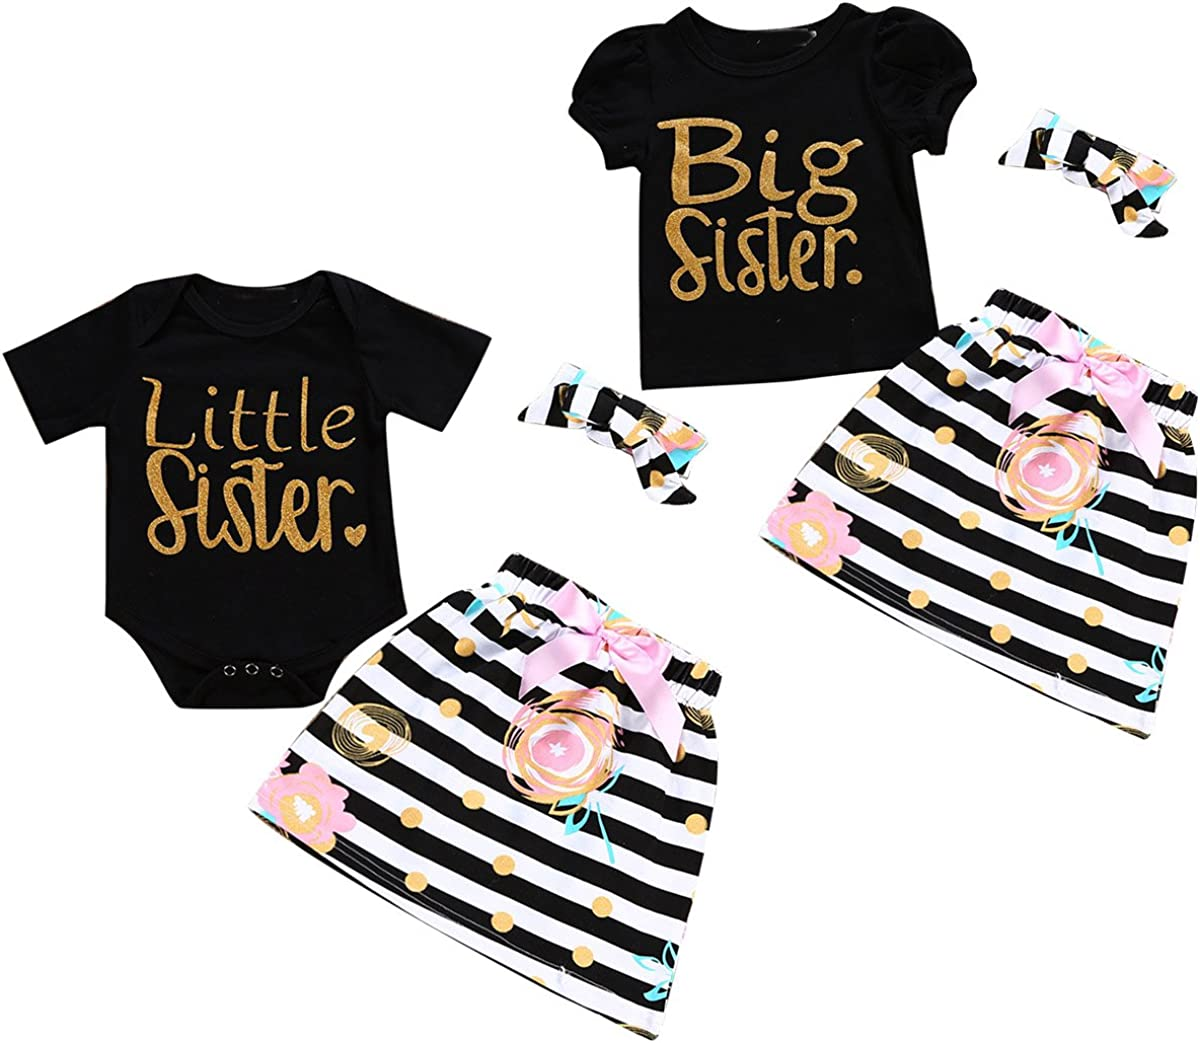 Baby Girls Sister Matching Outfits Big Little Big Sister Short Sleeve Top Romper Skirt Headband 3pcs Clothes Set Clothing